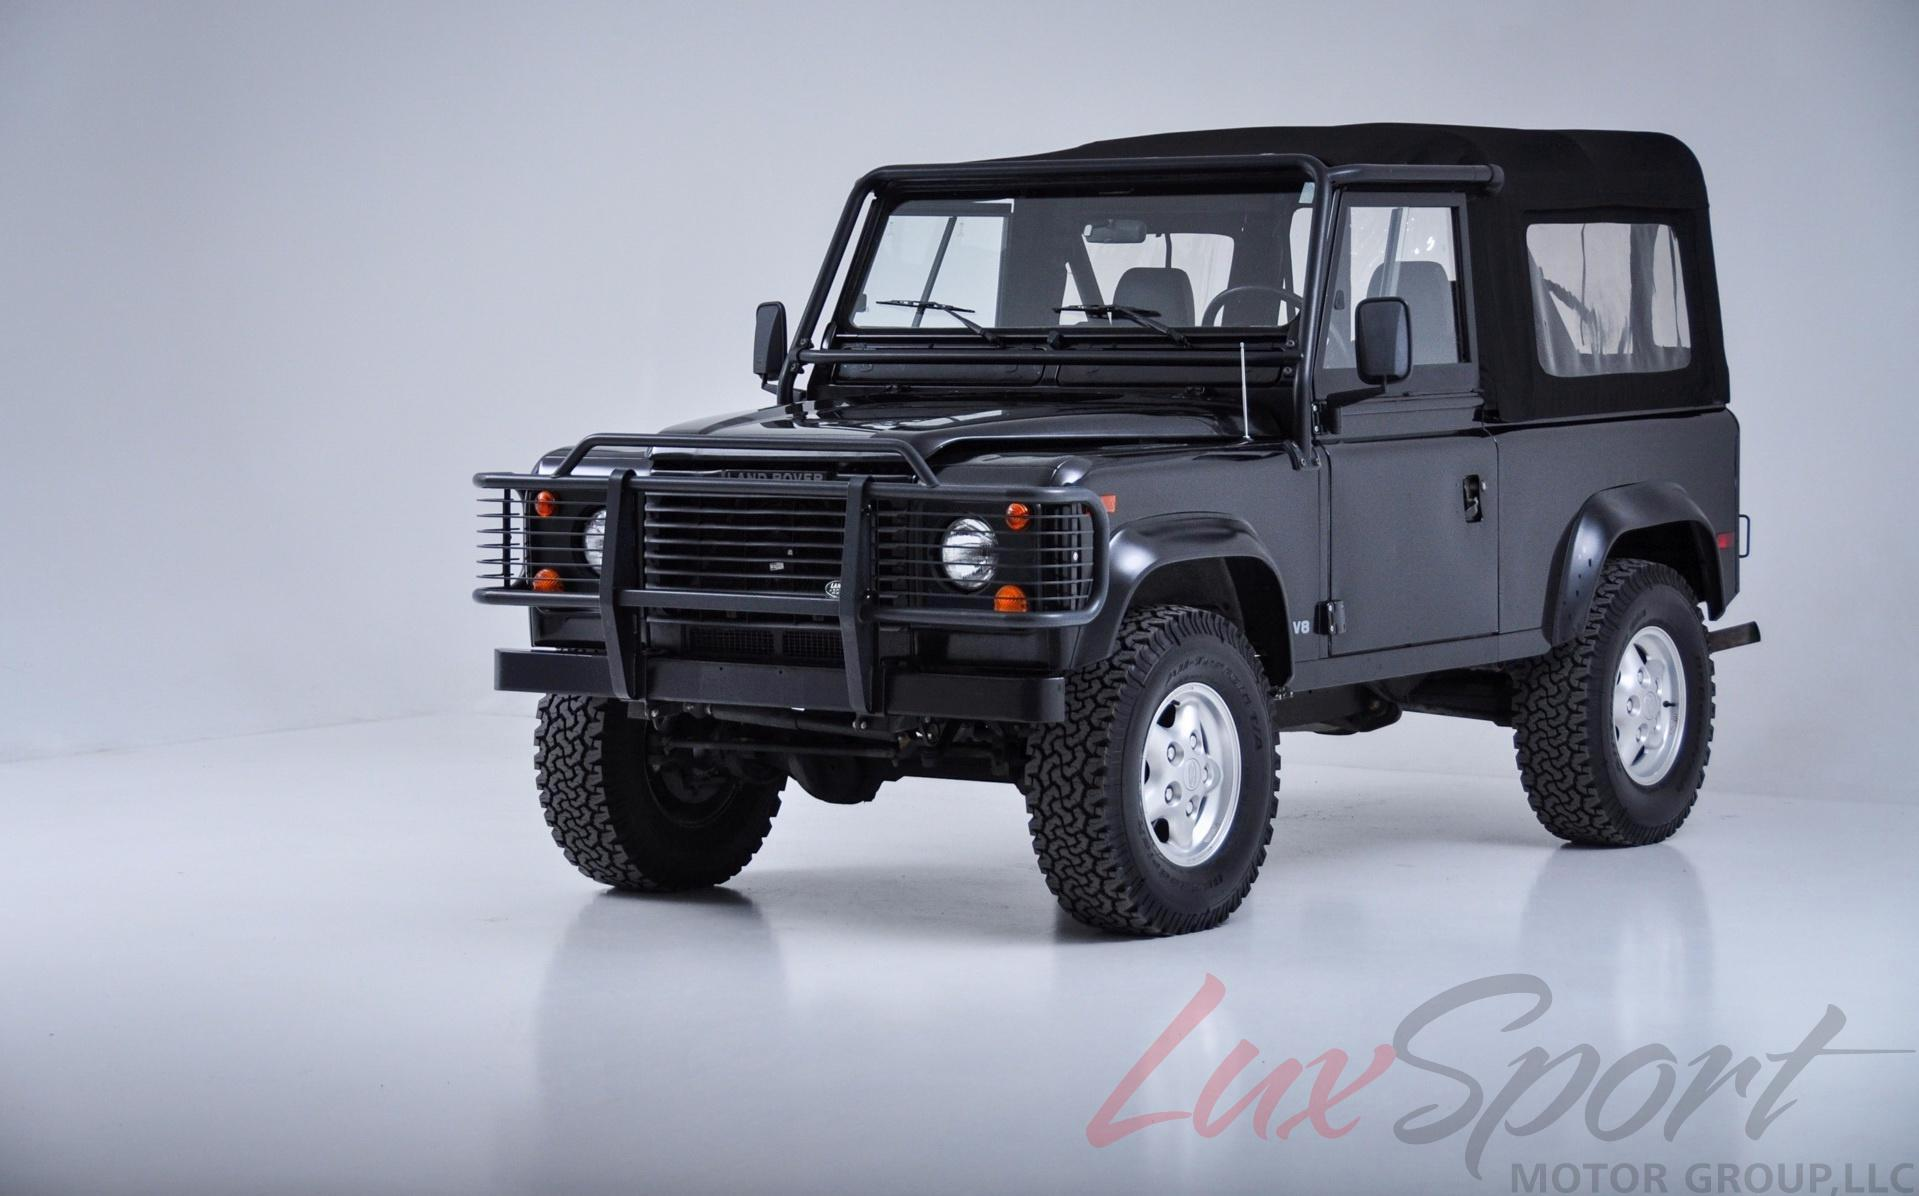 Used 1997 land rover defender 90 open top new hyde park ny